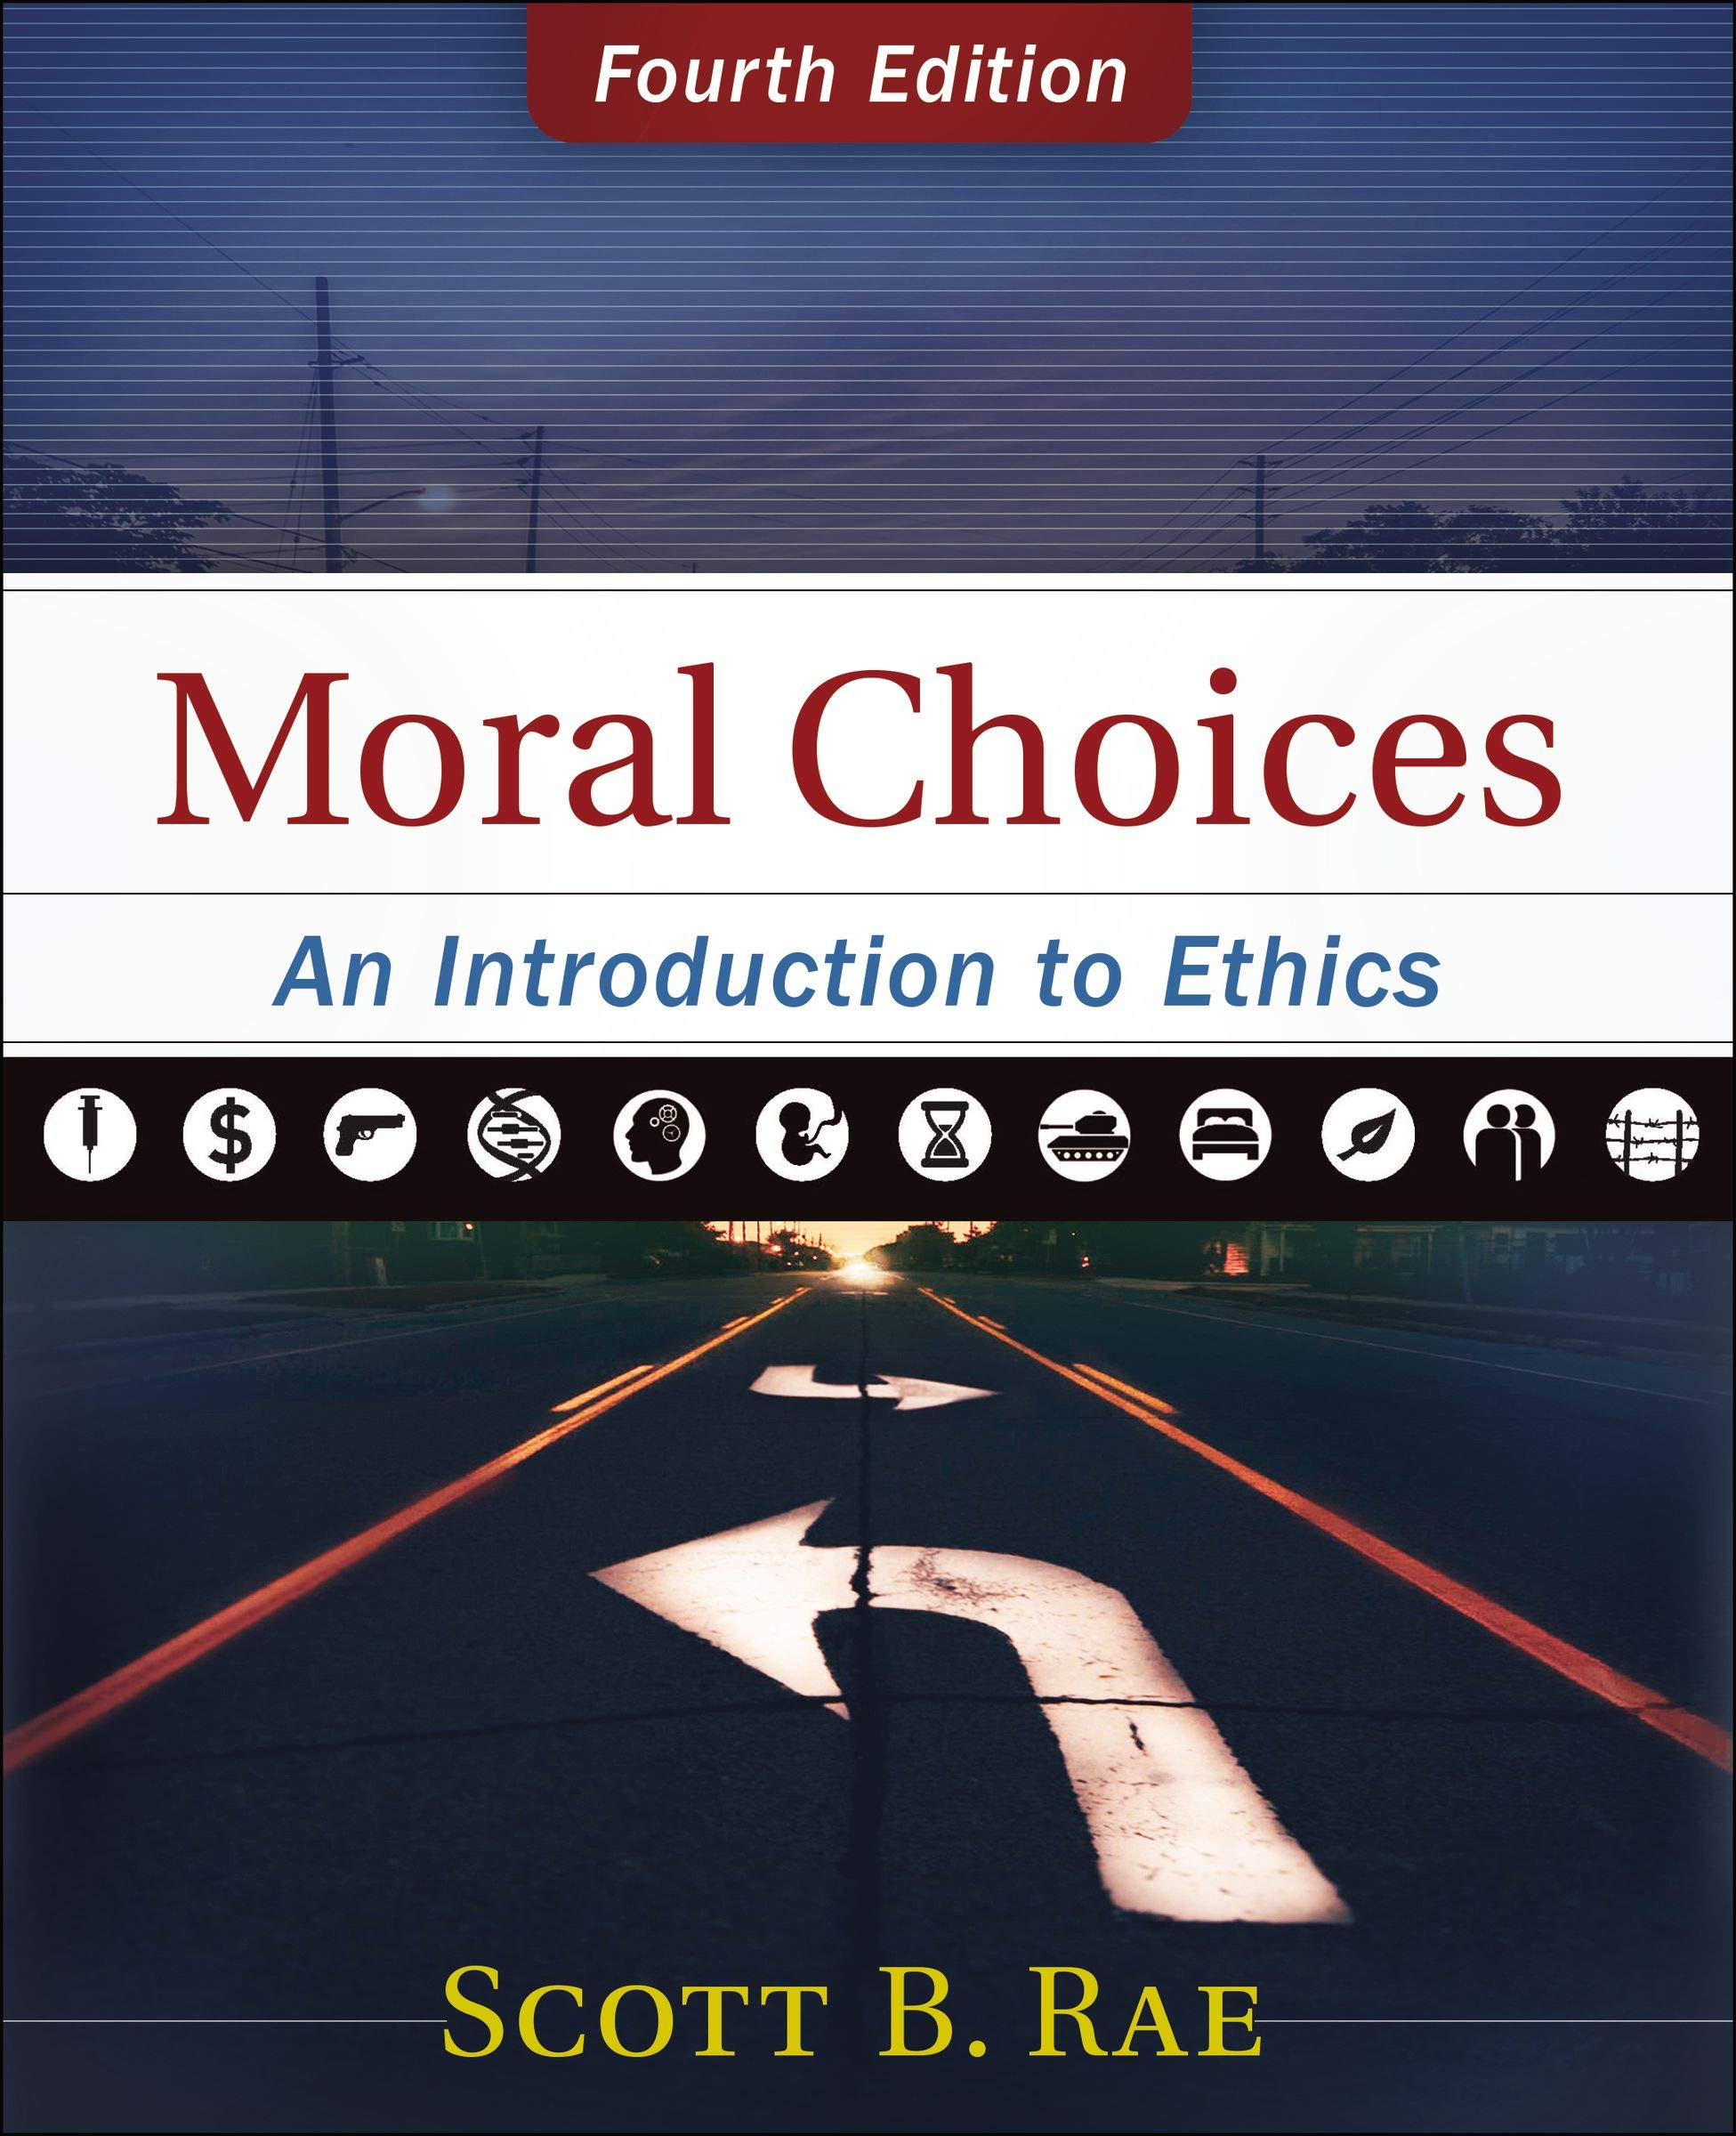 Moral Choices: An Introduction to Ethics by HarperCollins Christian Pub.